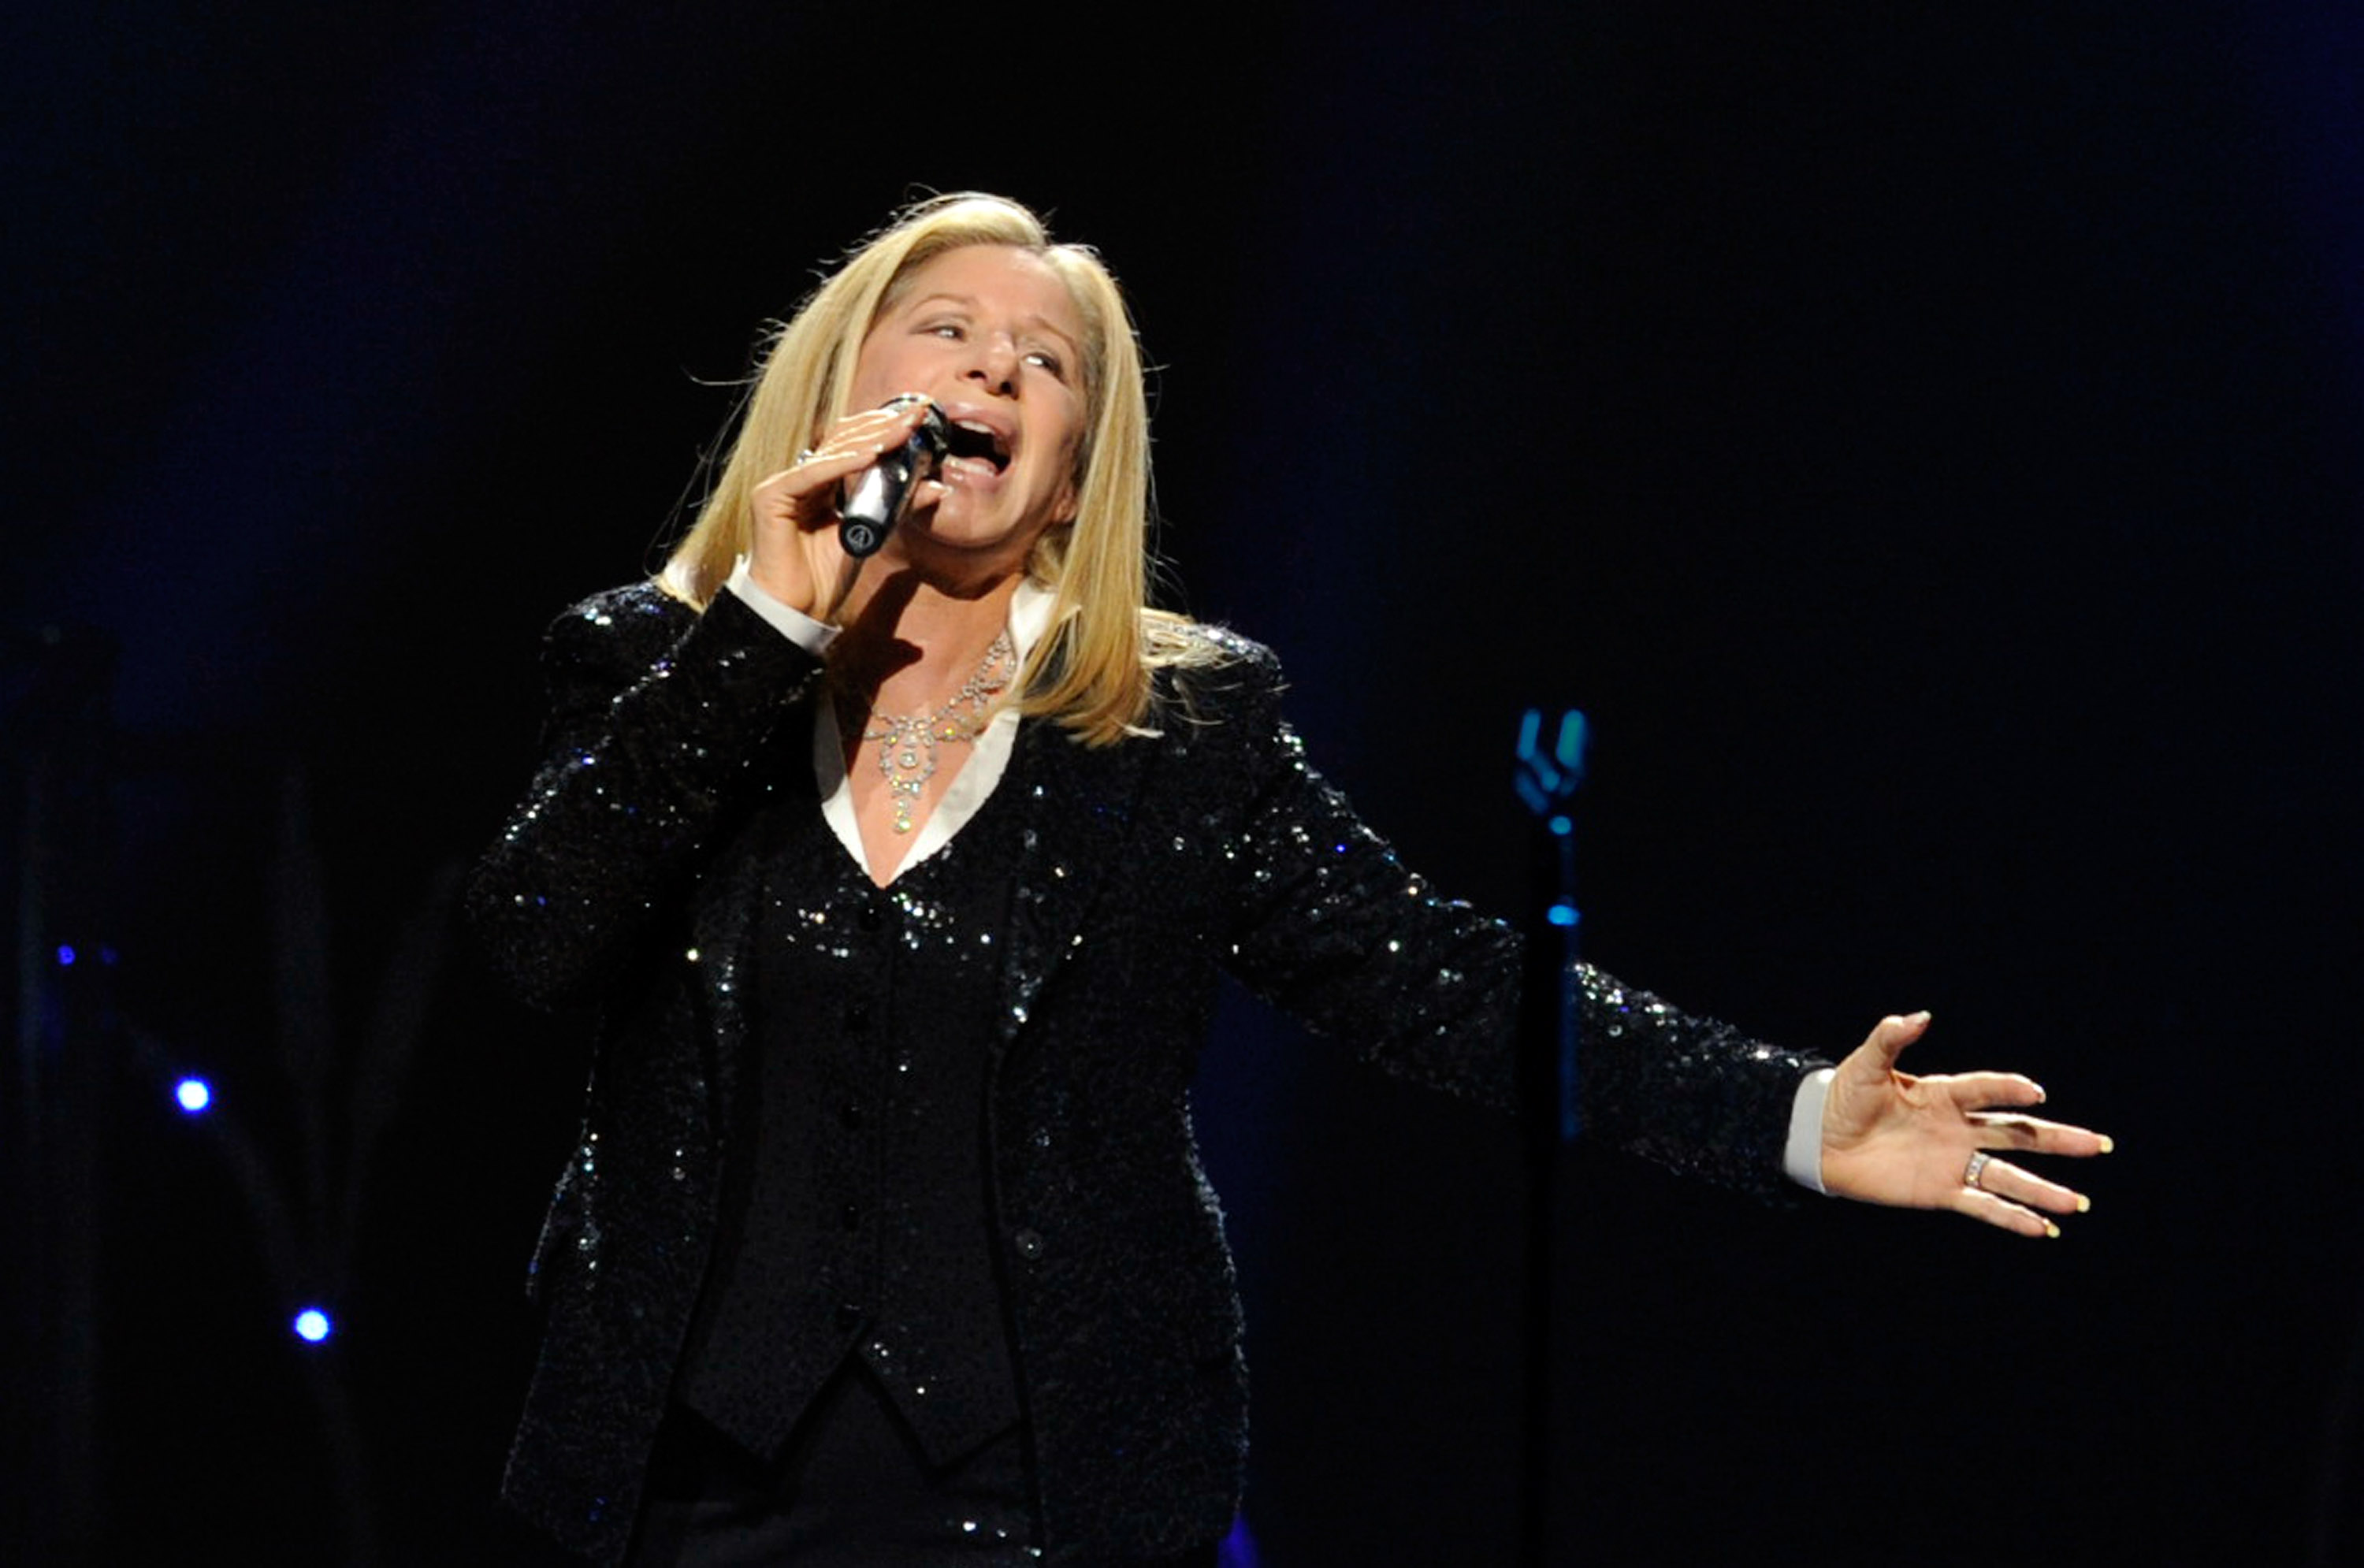 Barbra Streisand Performs At The MGM Grand